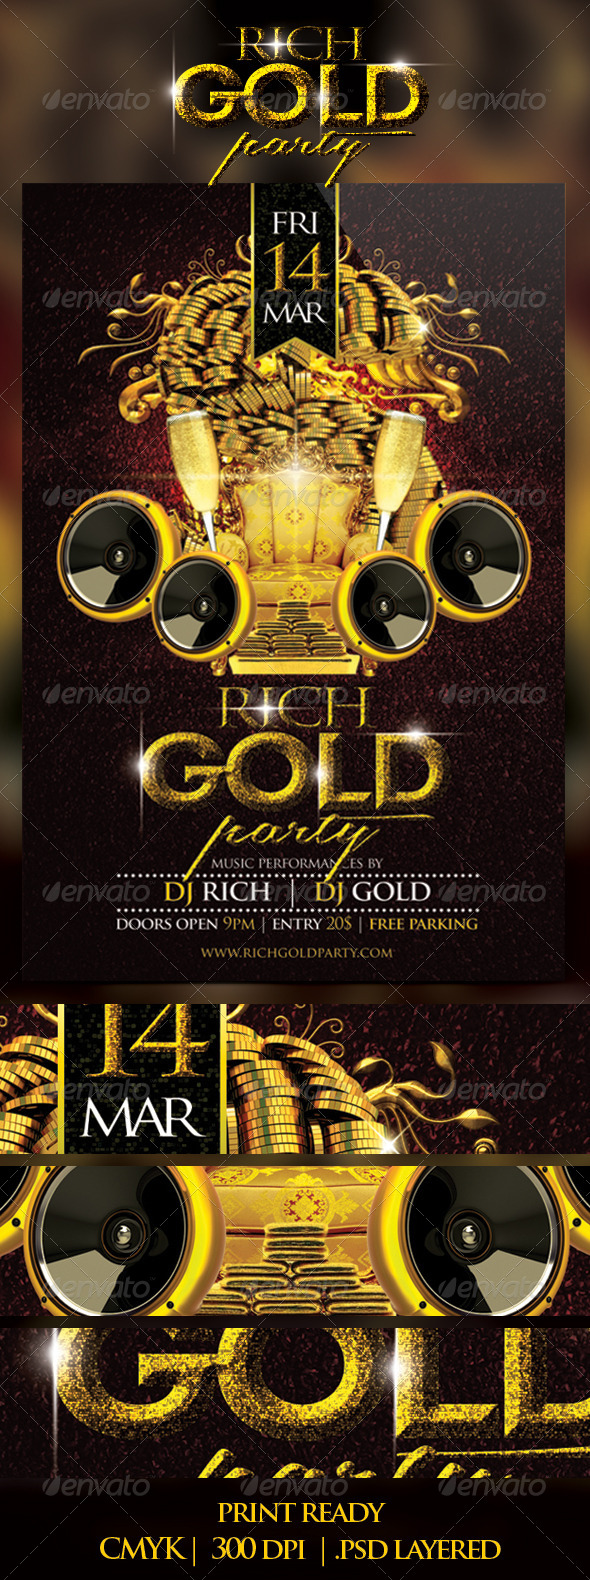 GraphicRiver Rich Gold Party Flyer 7026862